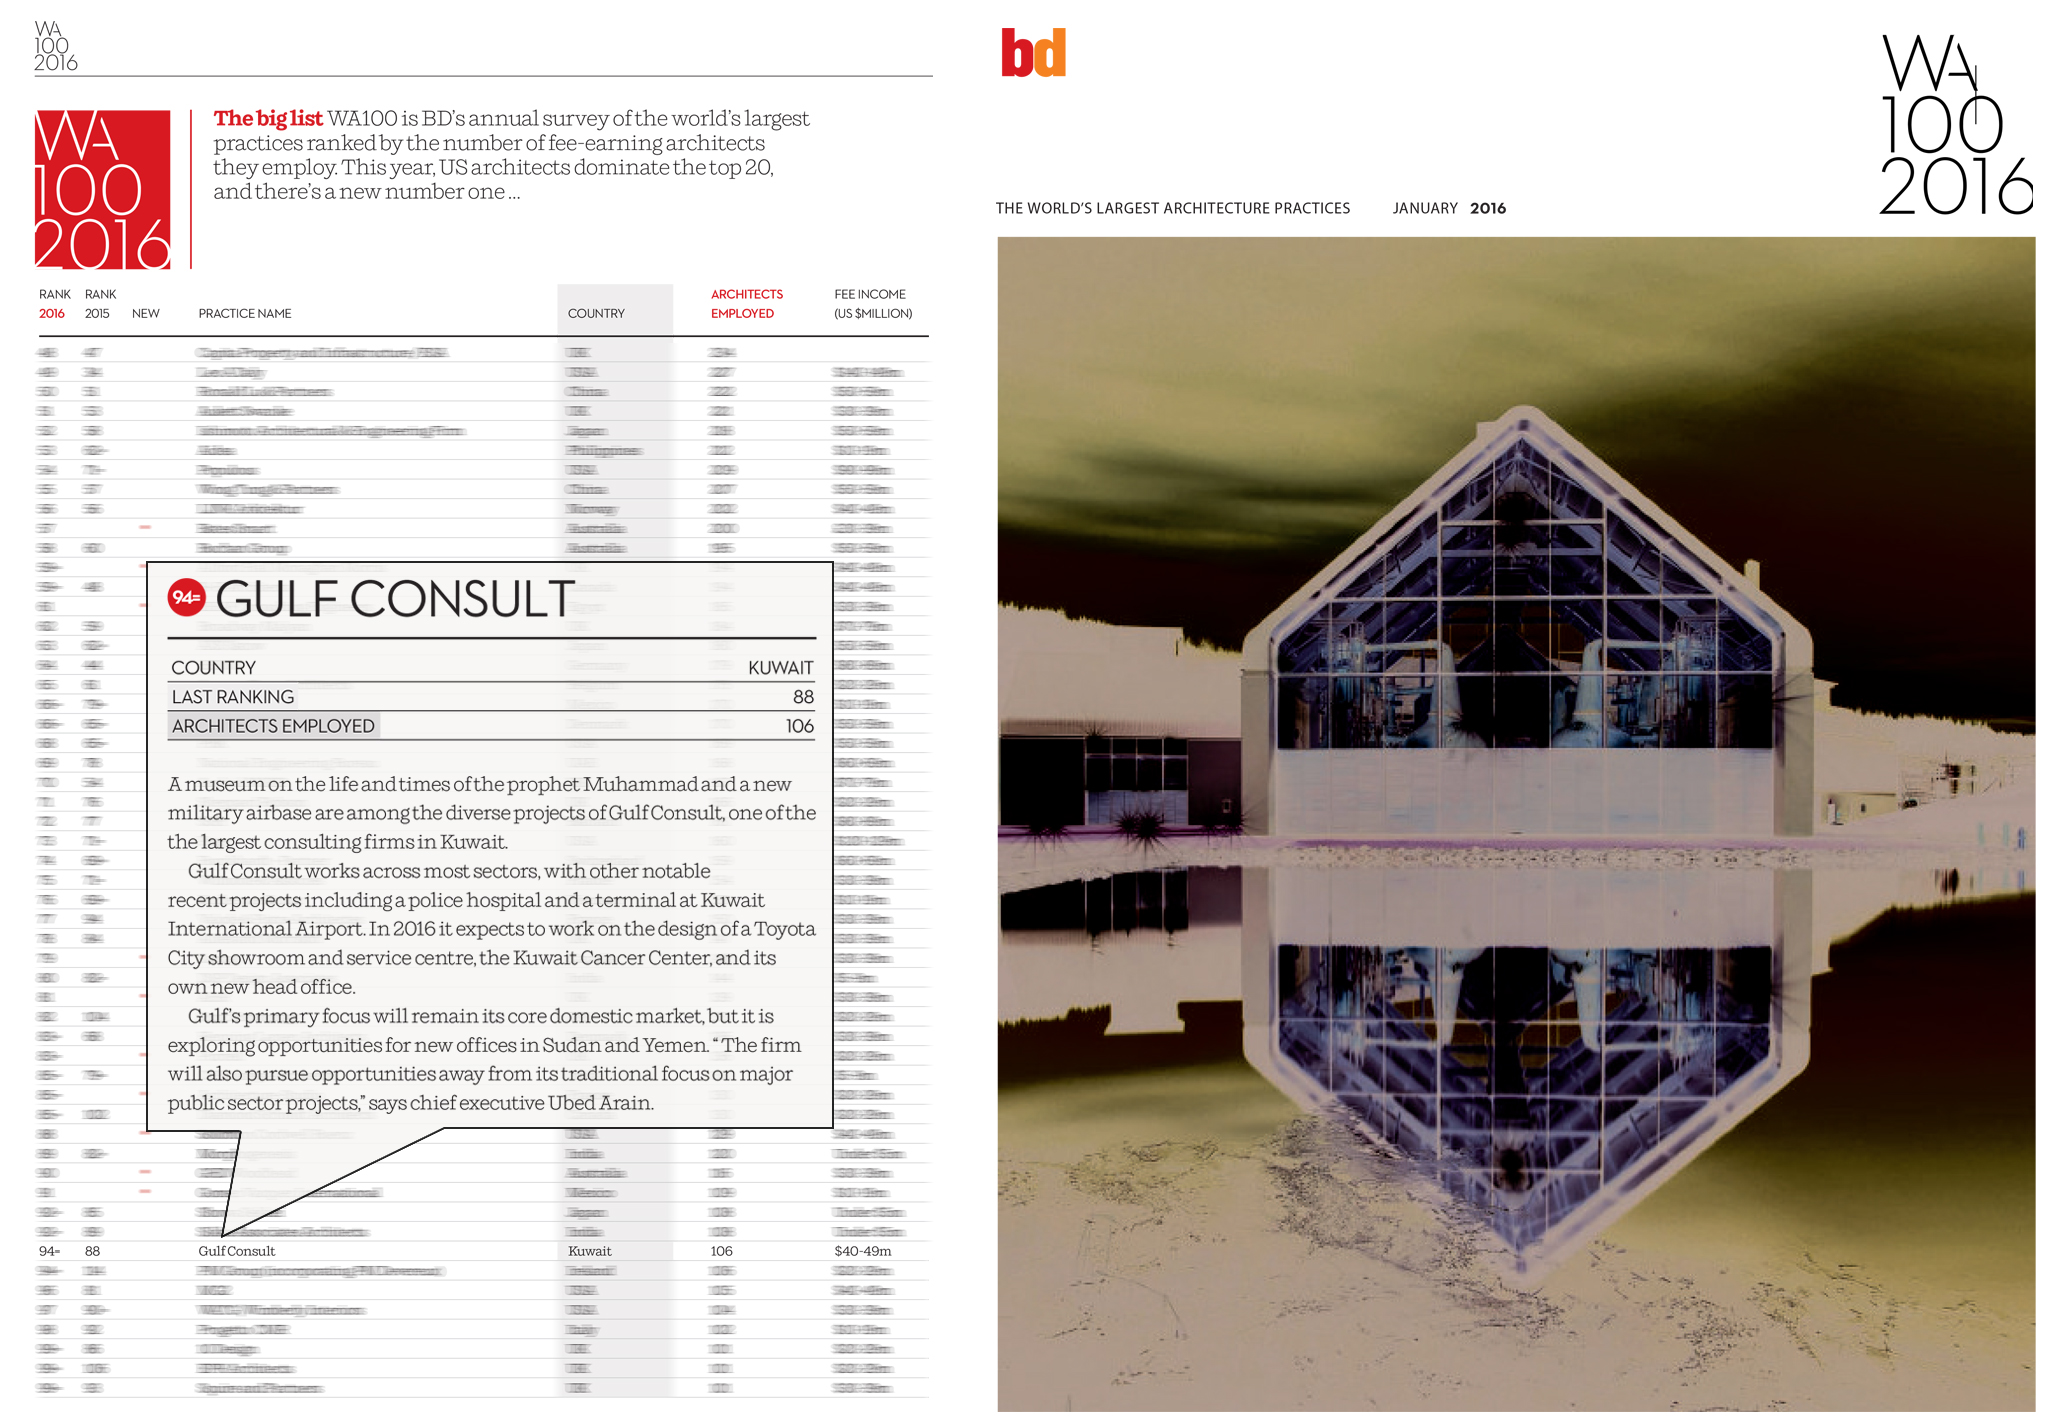 WA100 world architecture ranking